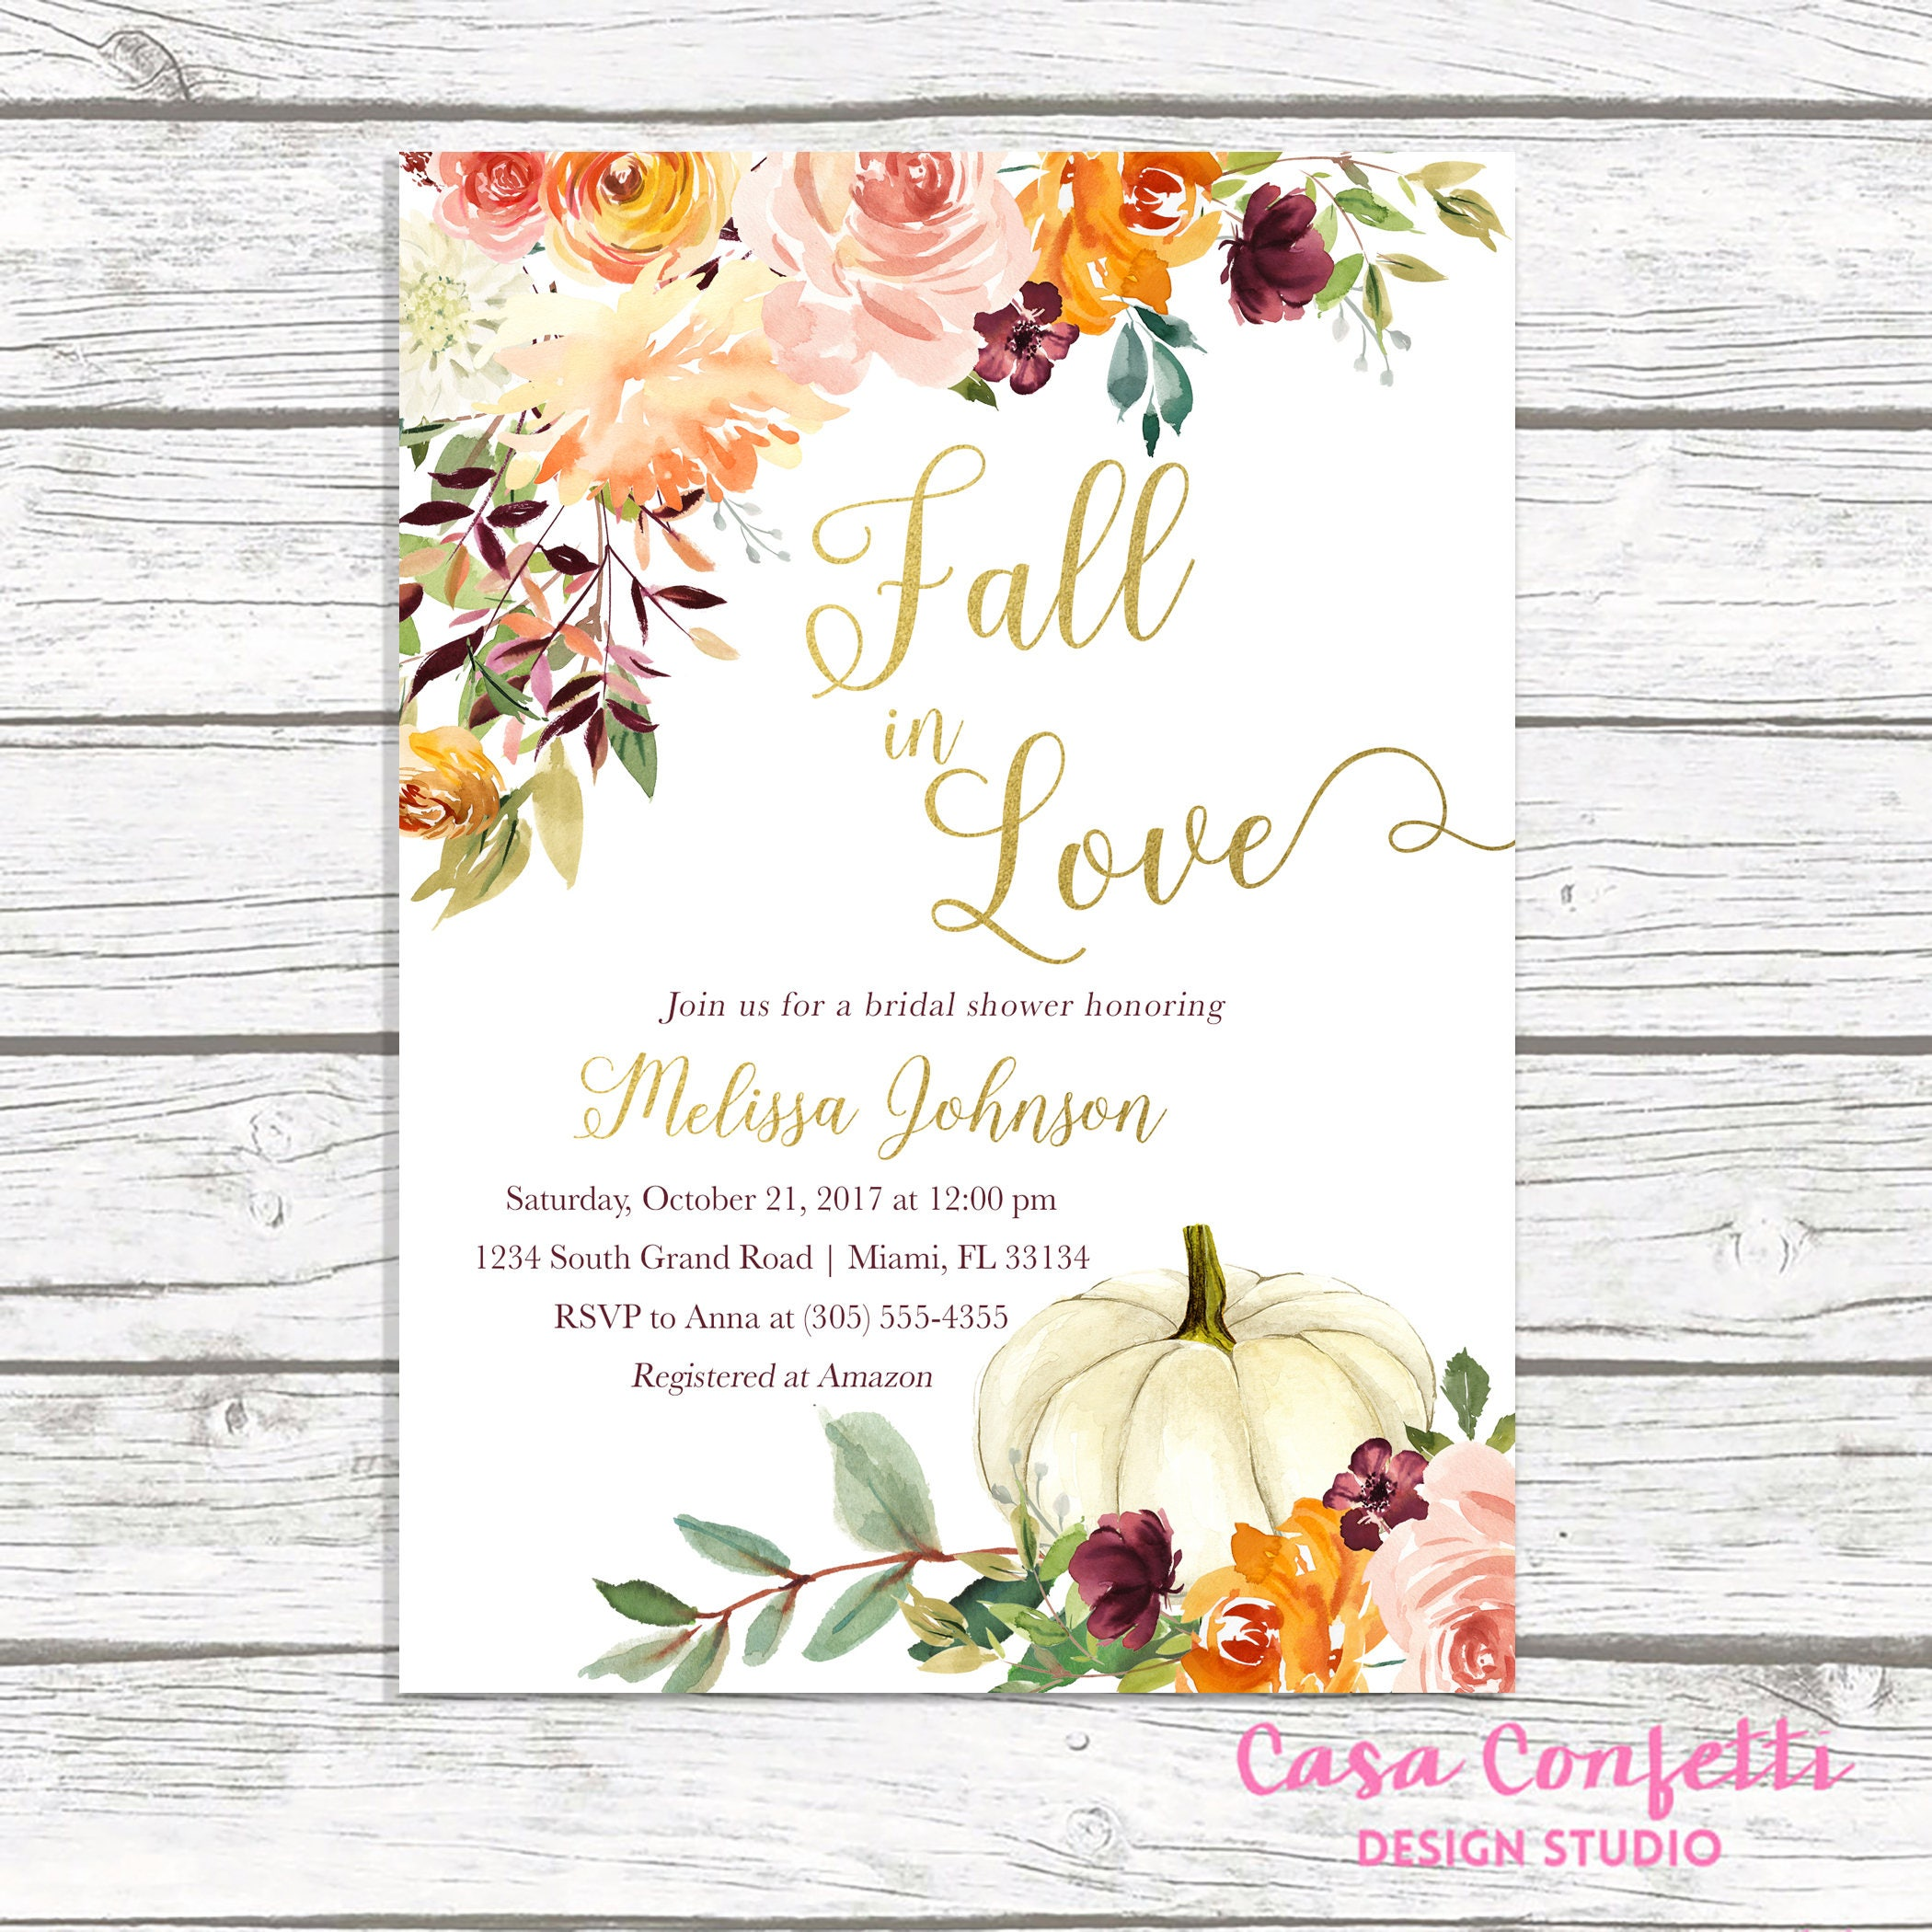 fall in love bridal shower invitation fall bridal shower invitation pumpkin bridal shower invitation falling in love bridal shower invite